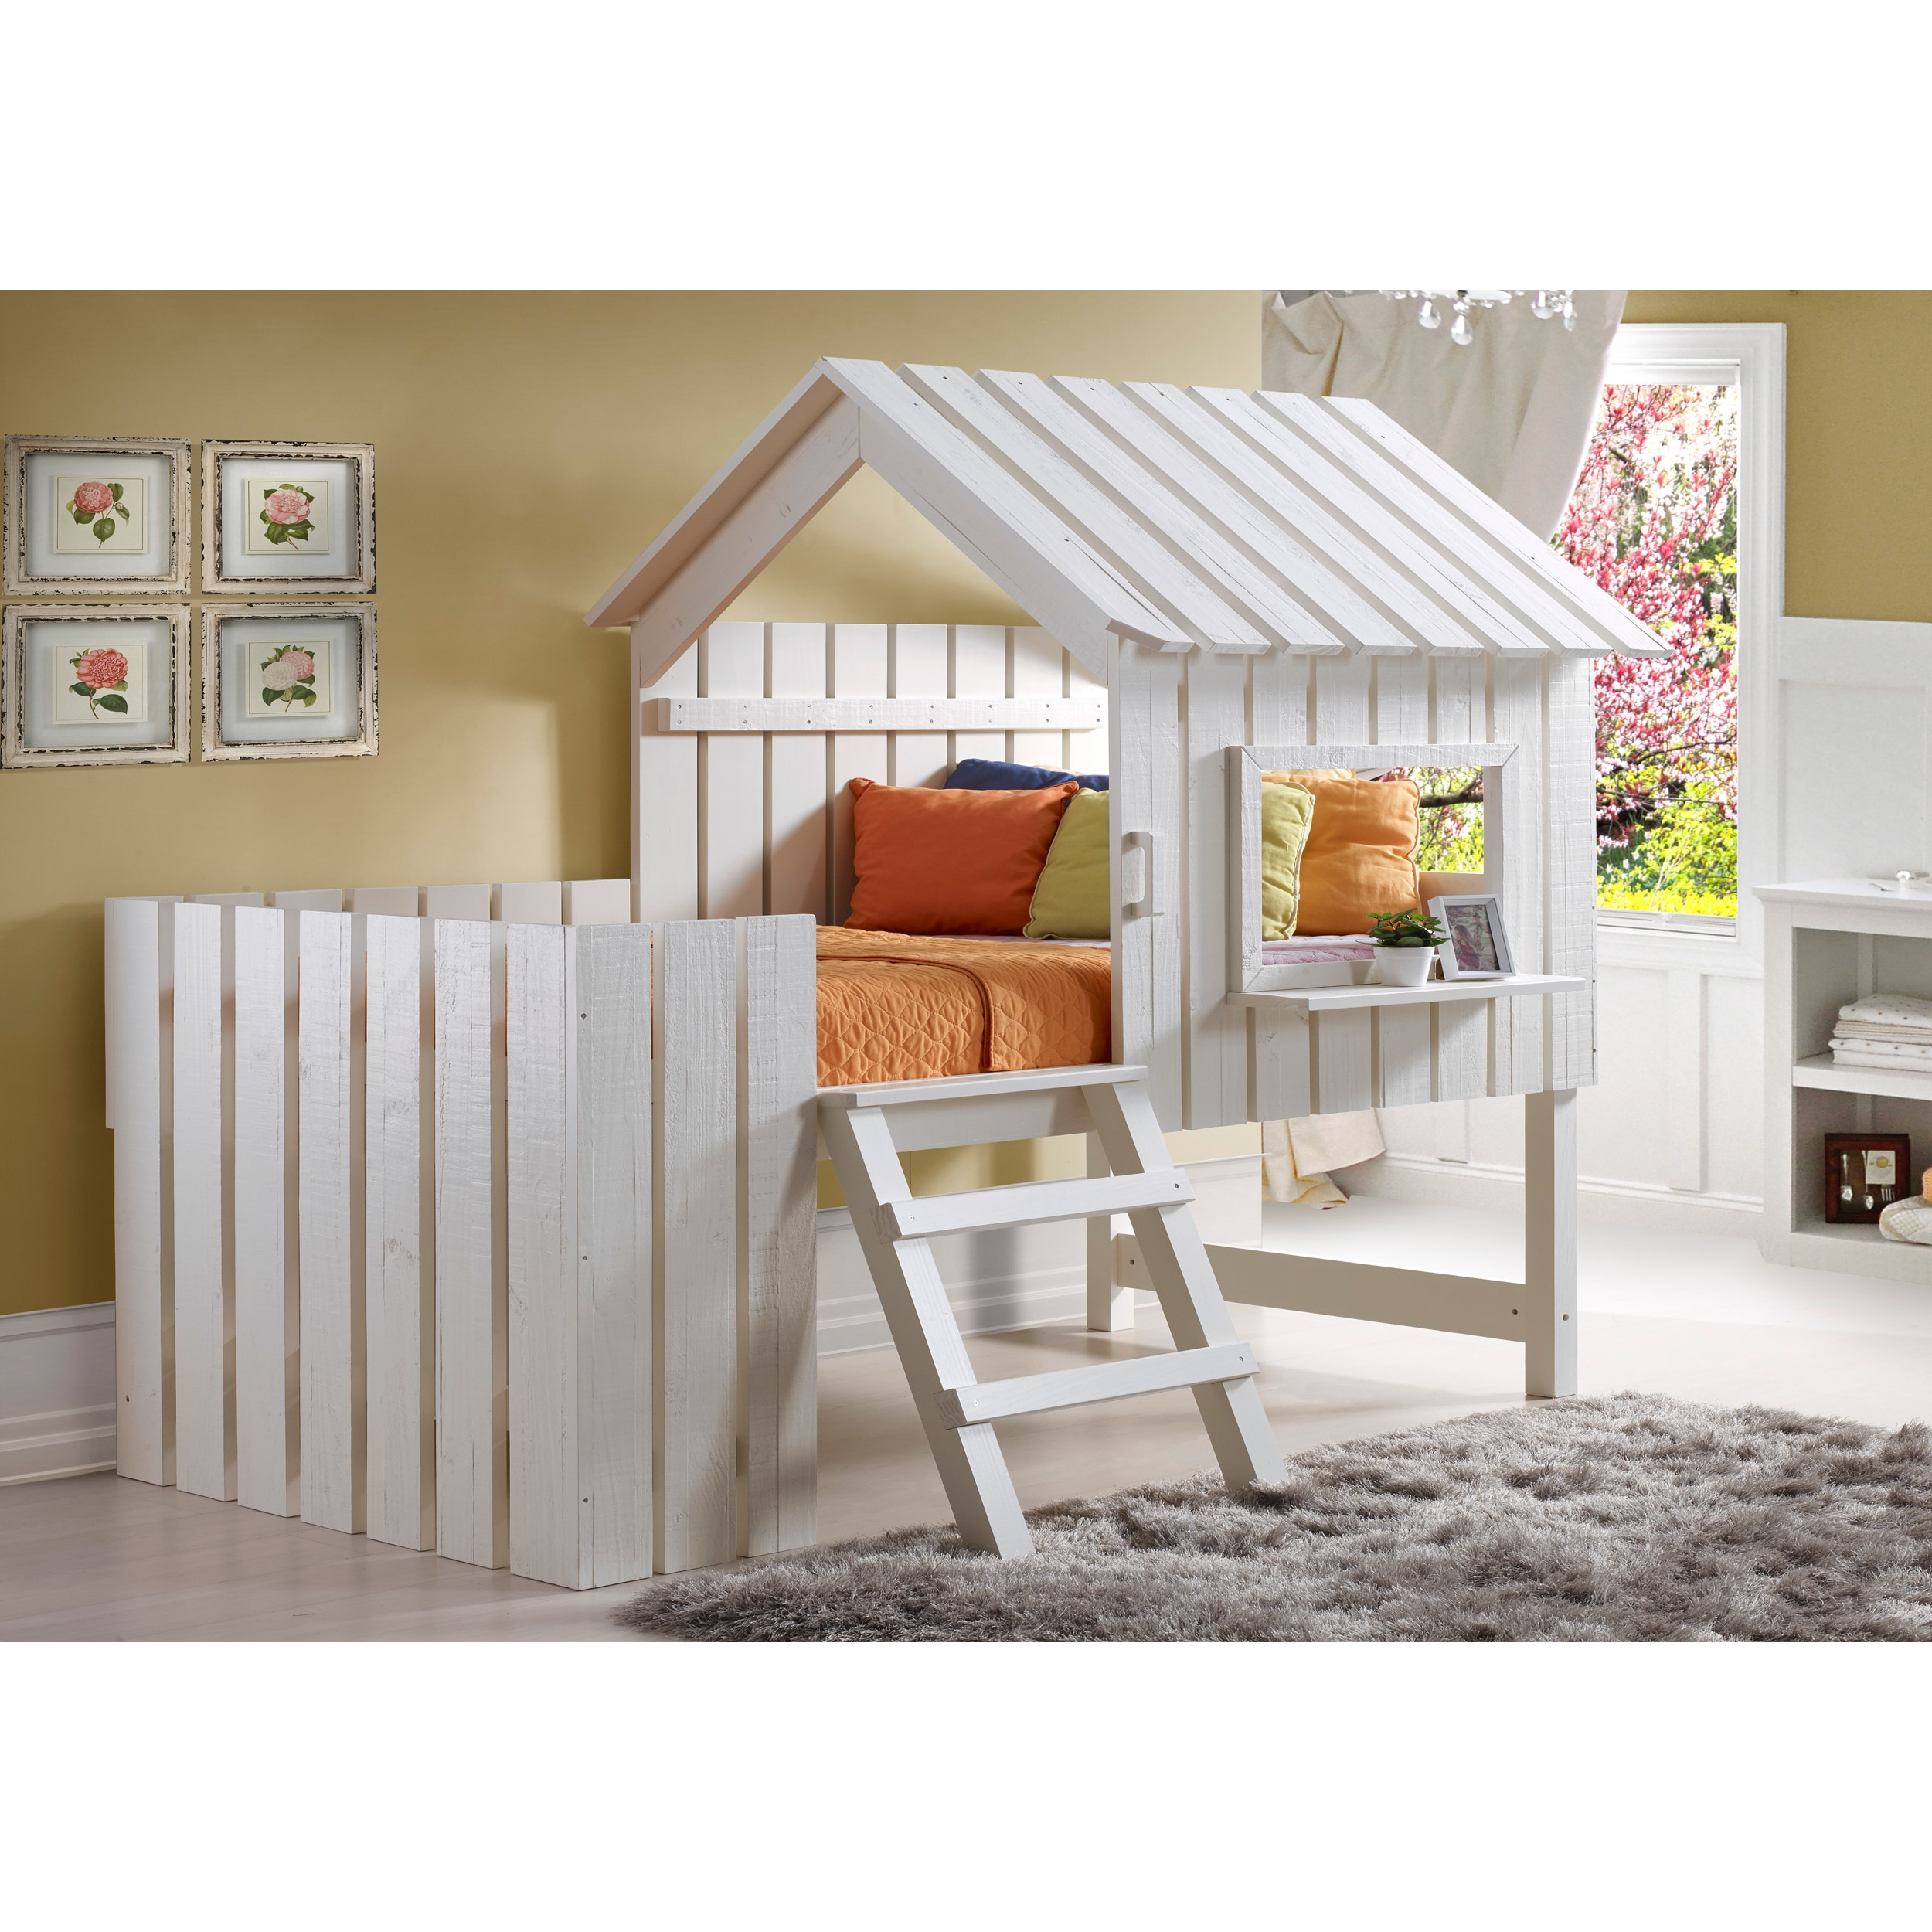 stairs desk with kids idea bed design door bunk and loft s image beds stair of latest child